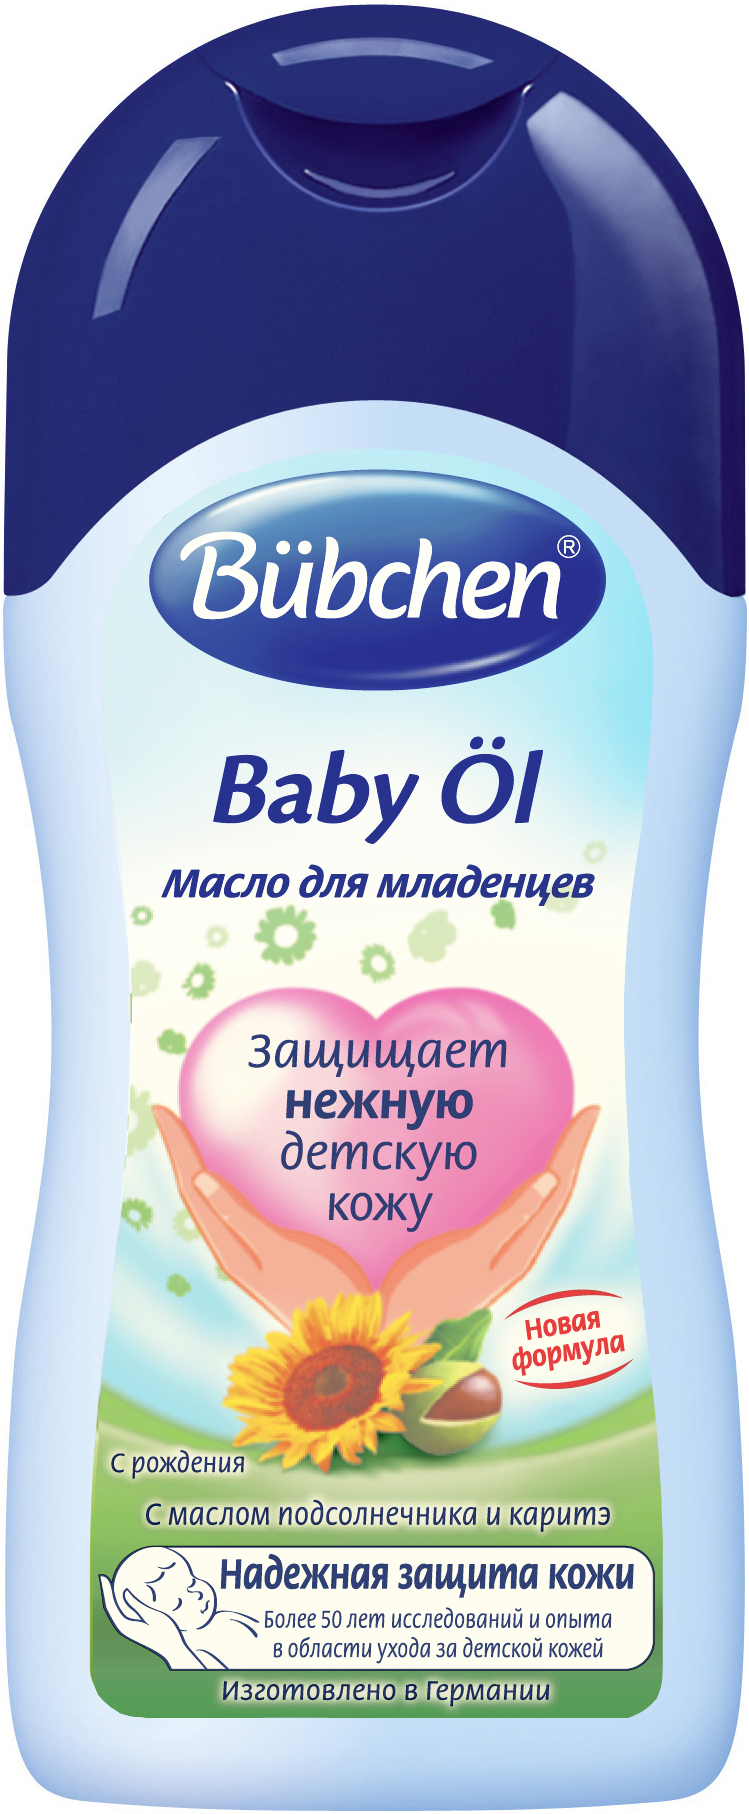 Масло Bubchen 400 мл велосипед giant scr 1 2015